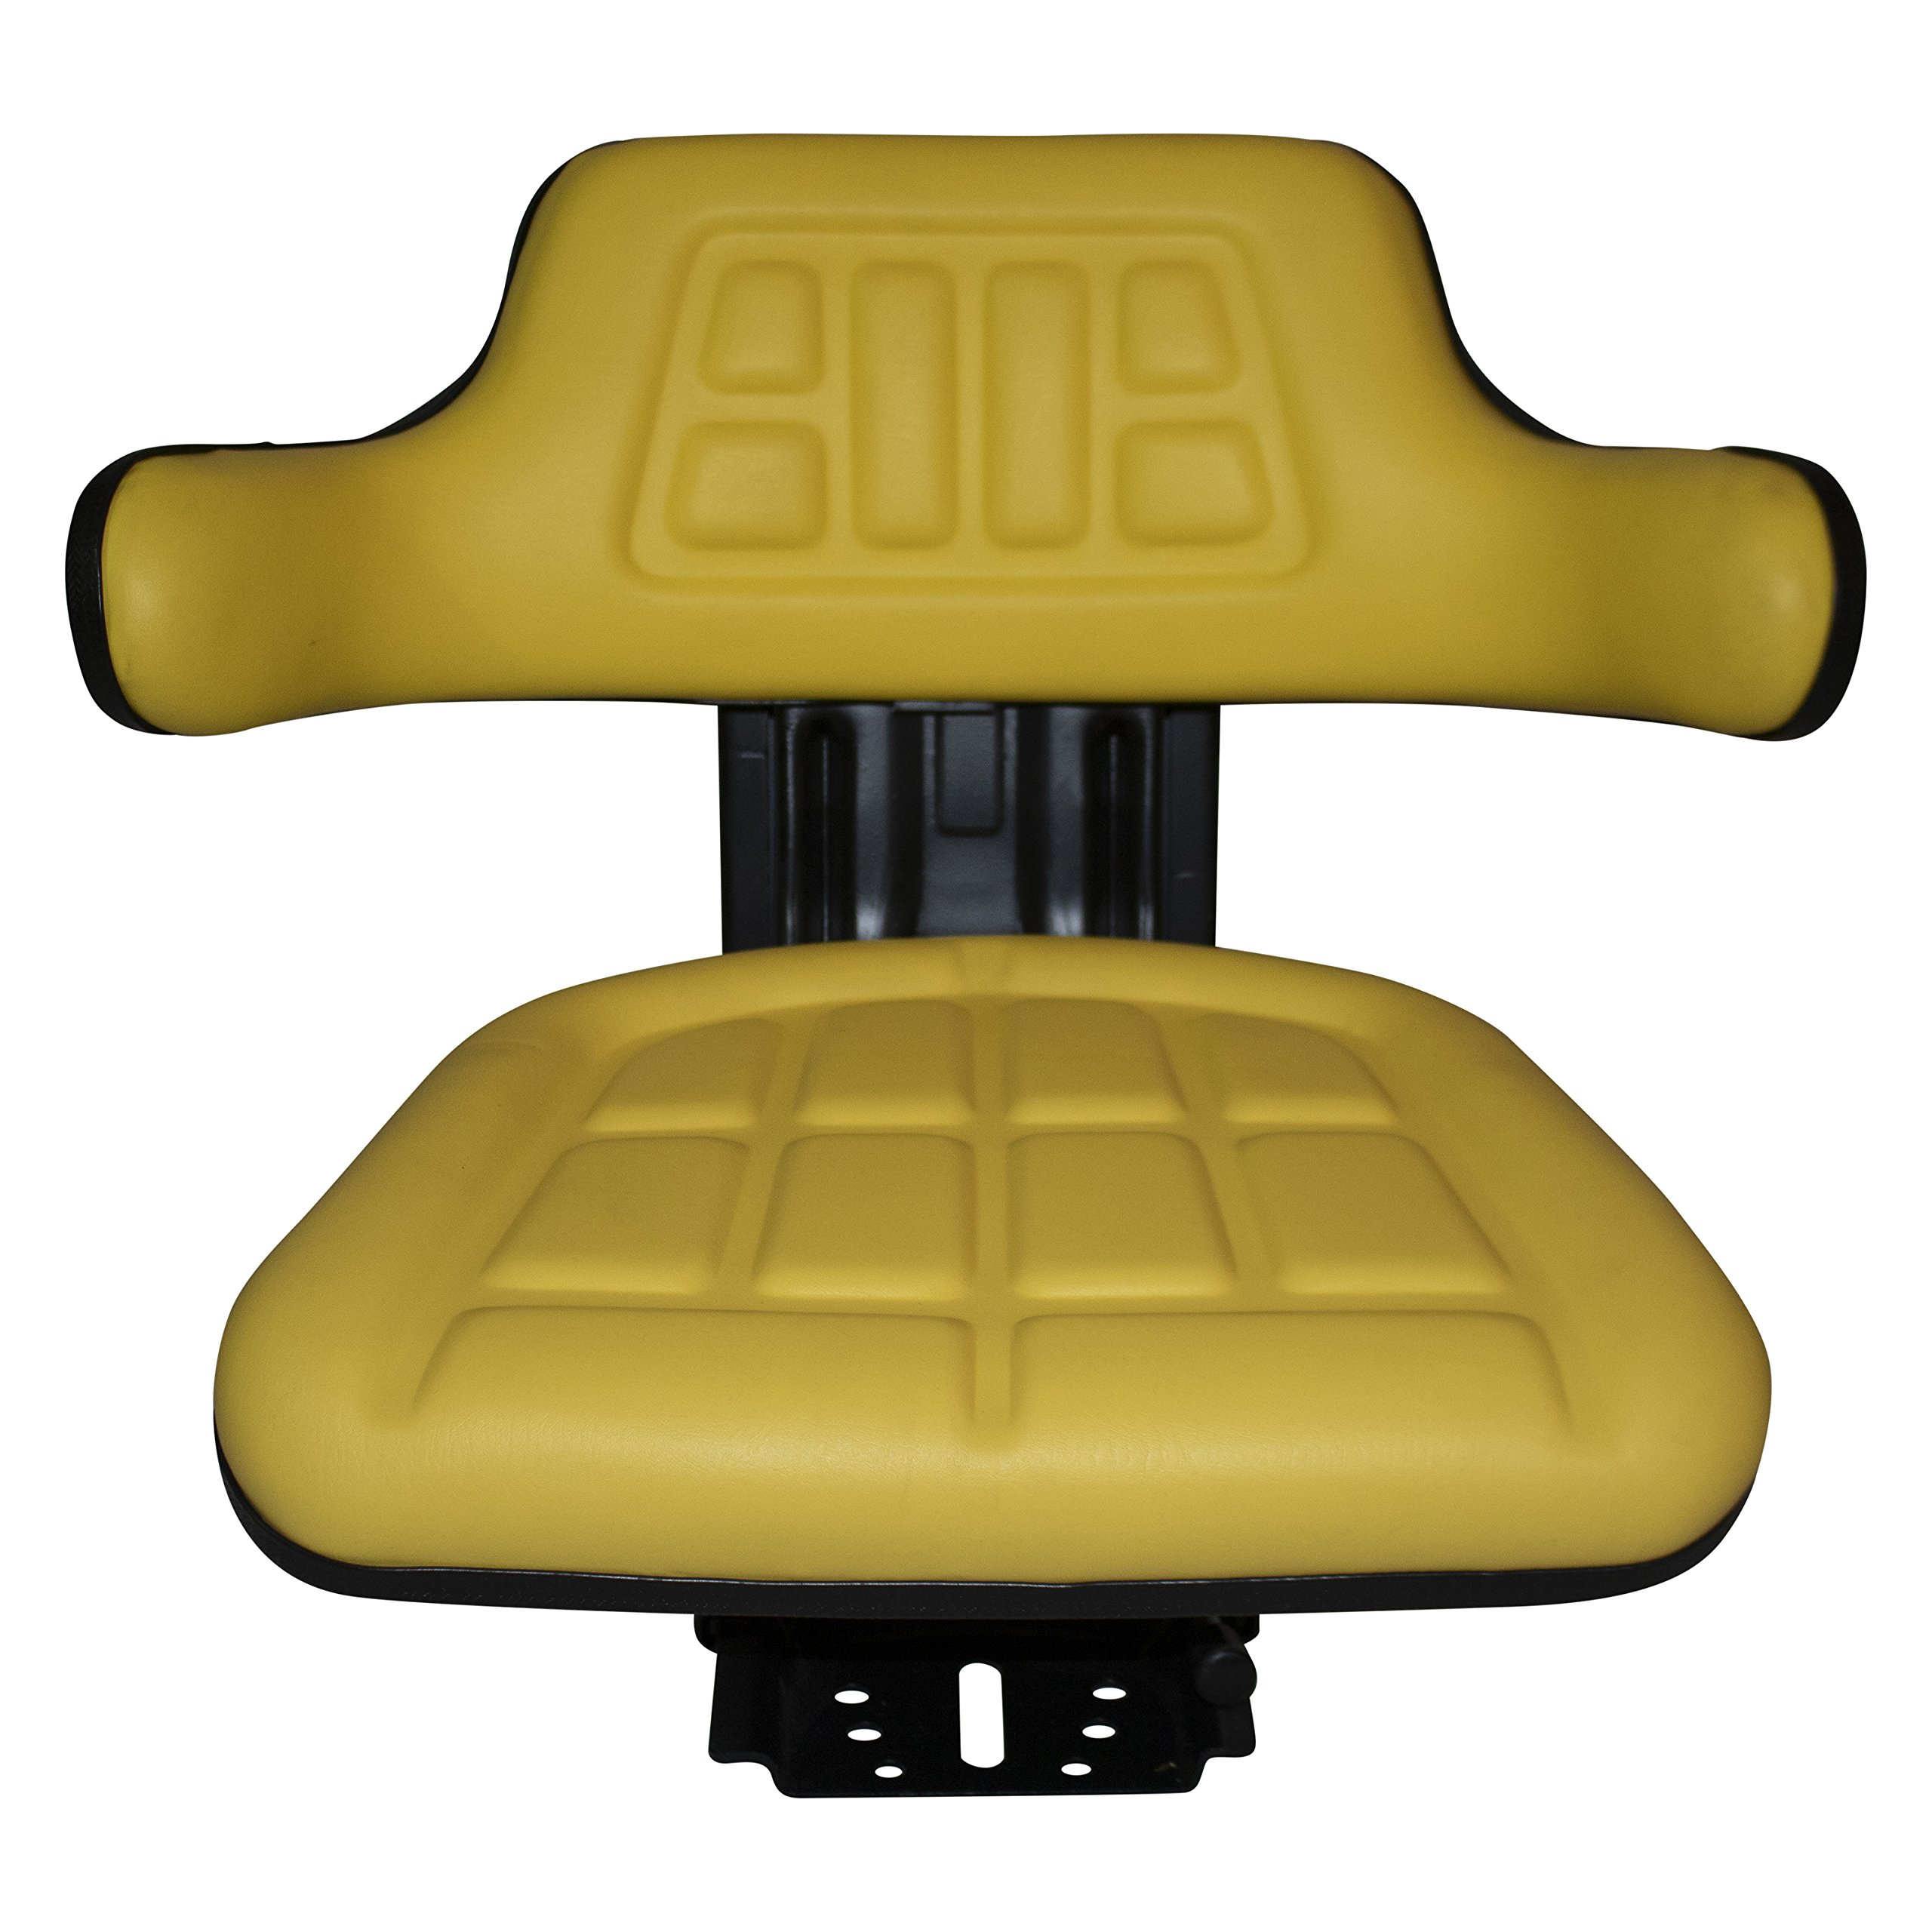 Yellow TRAC SEATS Brand Waffle Style Universal Tractor Suspension SEAT with TILT FITS John Deere 2140 2150 2155 2240 2255 5310 5400 6110